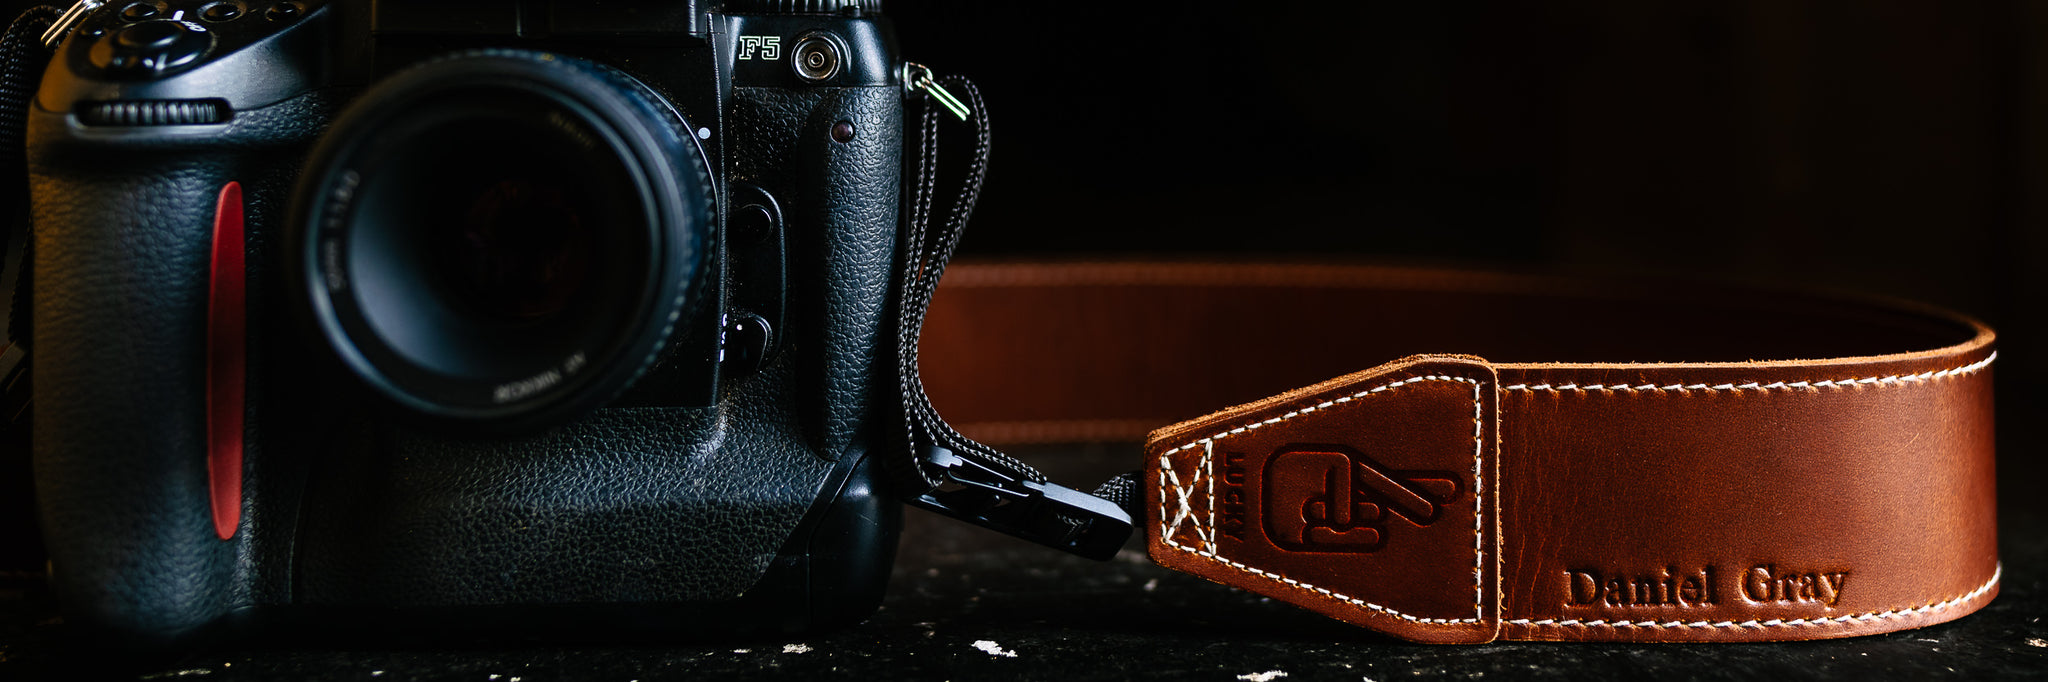 Lucky Camera straps Leather Embossing Personalisation with Quick Release